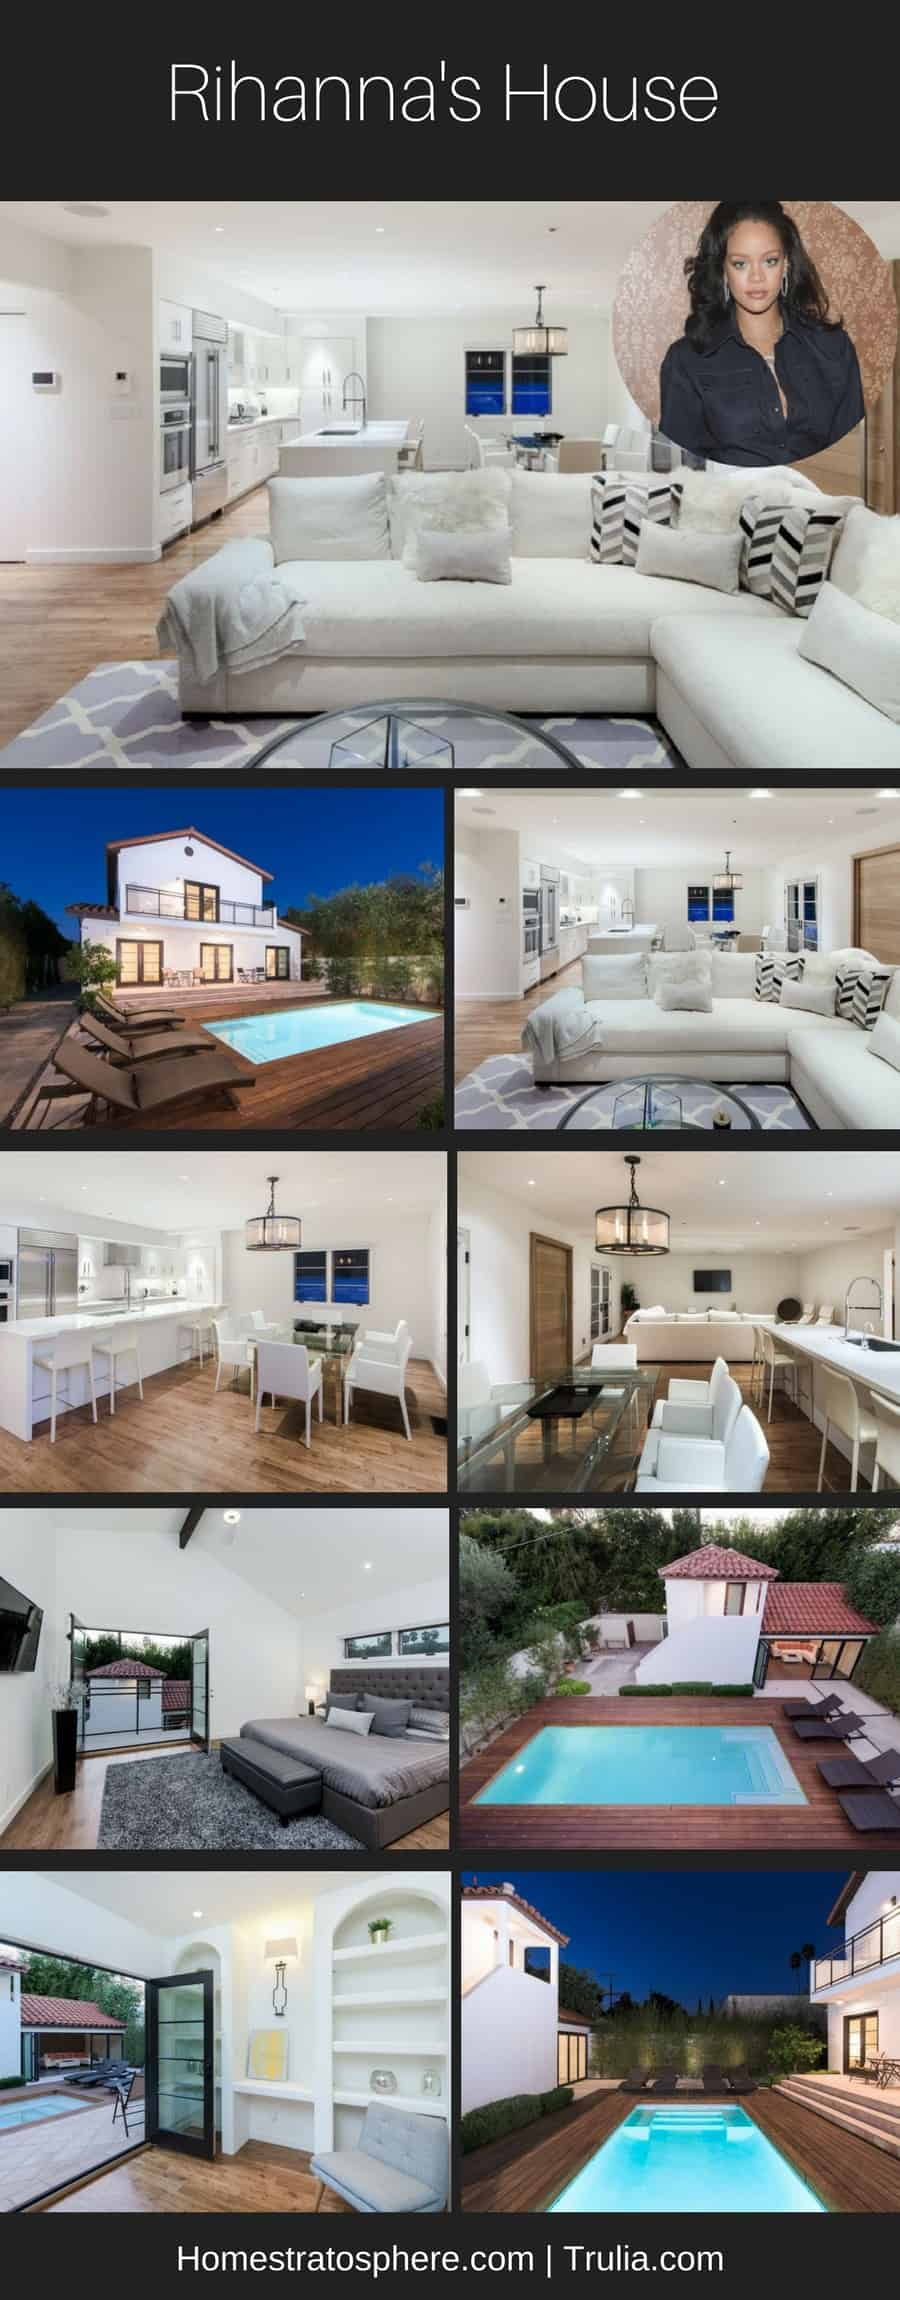 Rihanna's West Hollywood House Infographic